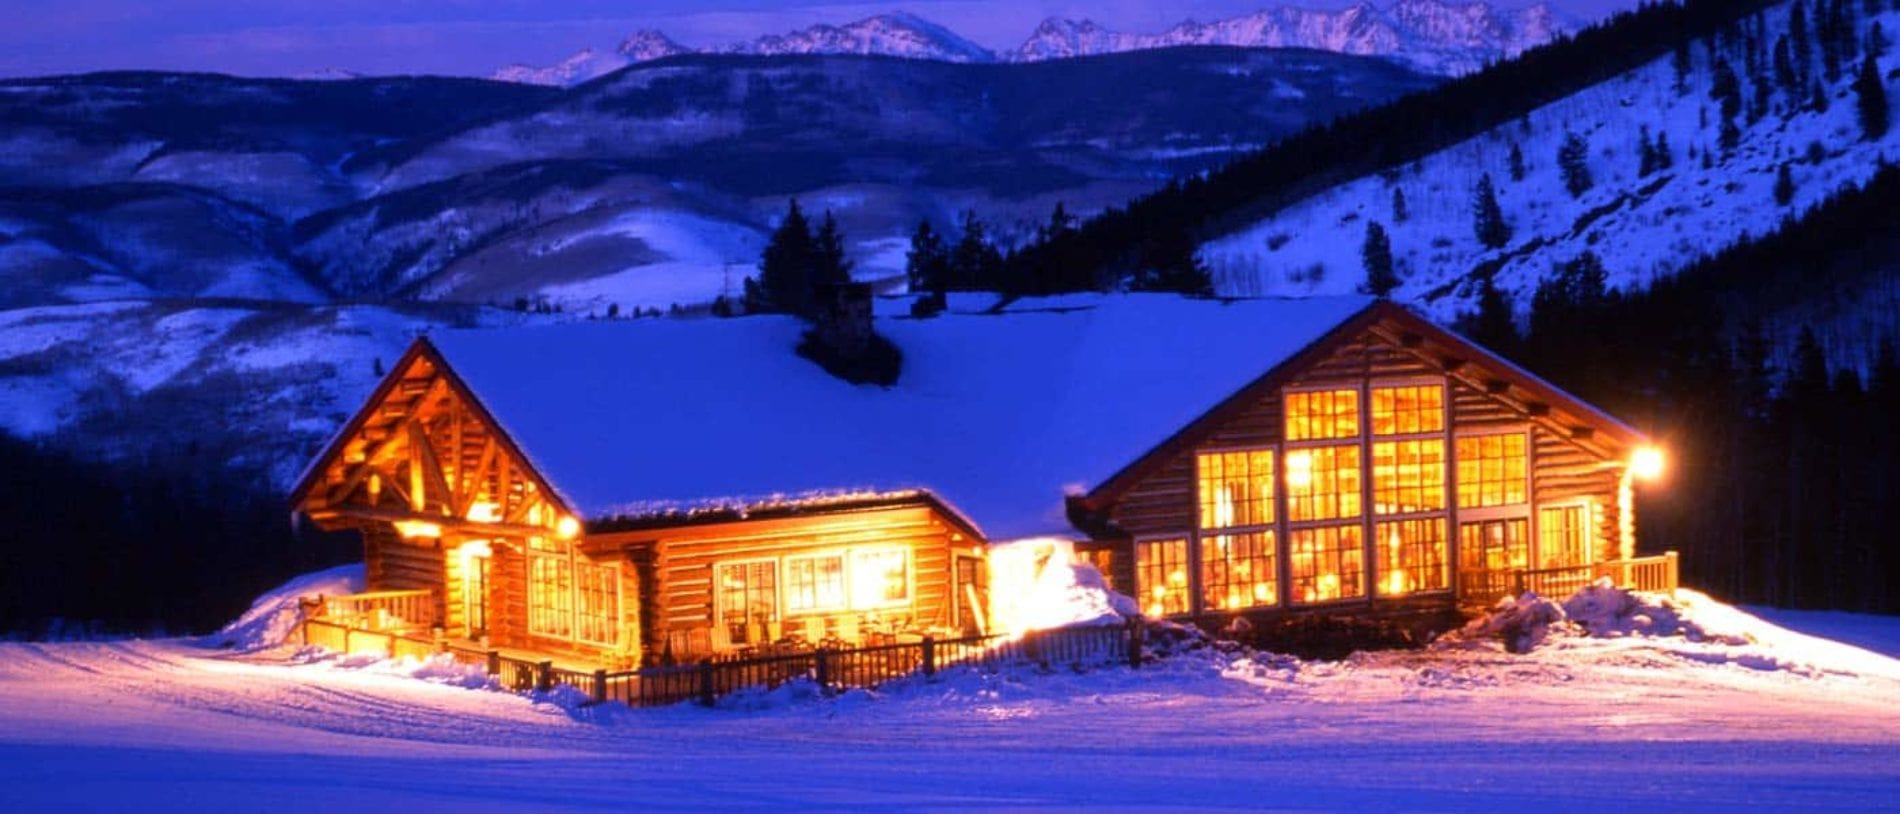 Exceptional A Dinner Adventure At Beanou0027s Cabin Admin 2018 01 25T10:17:57+00:00